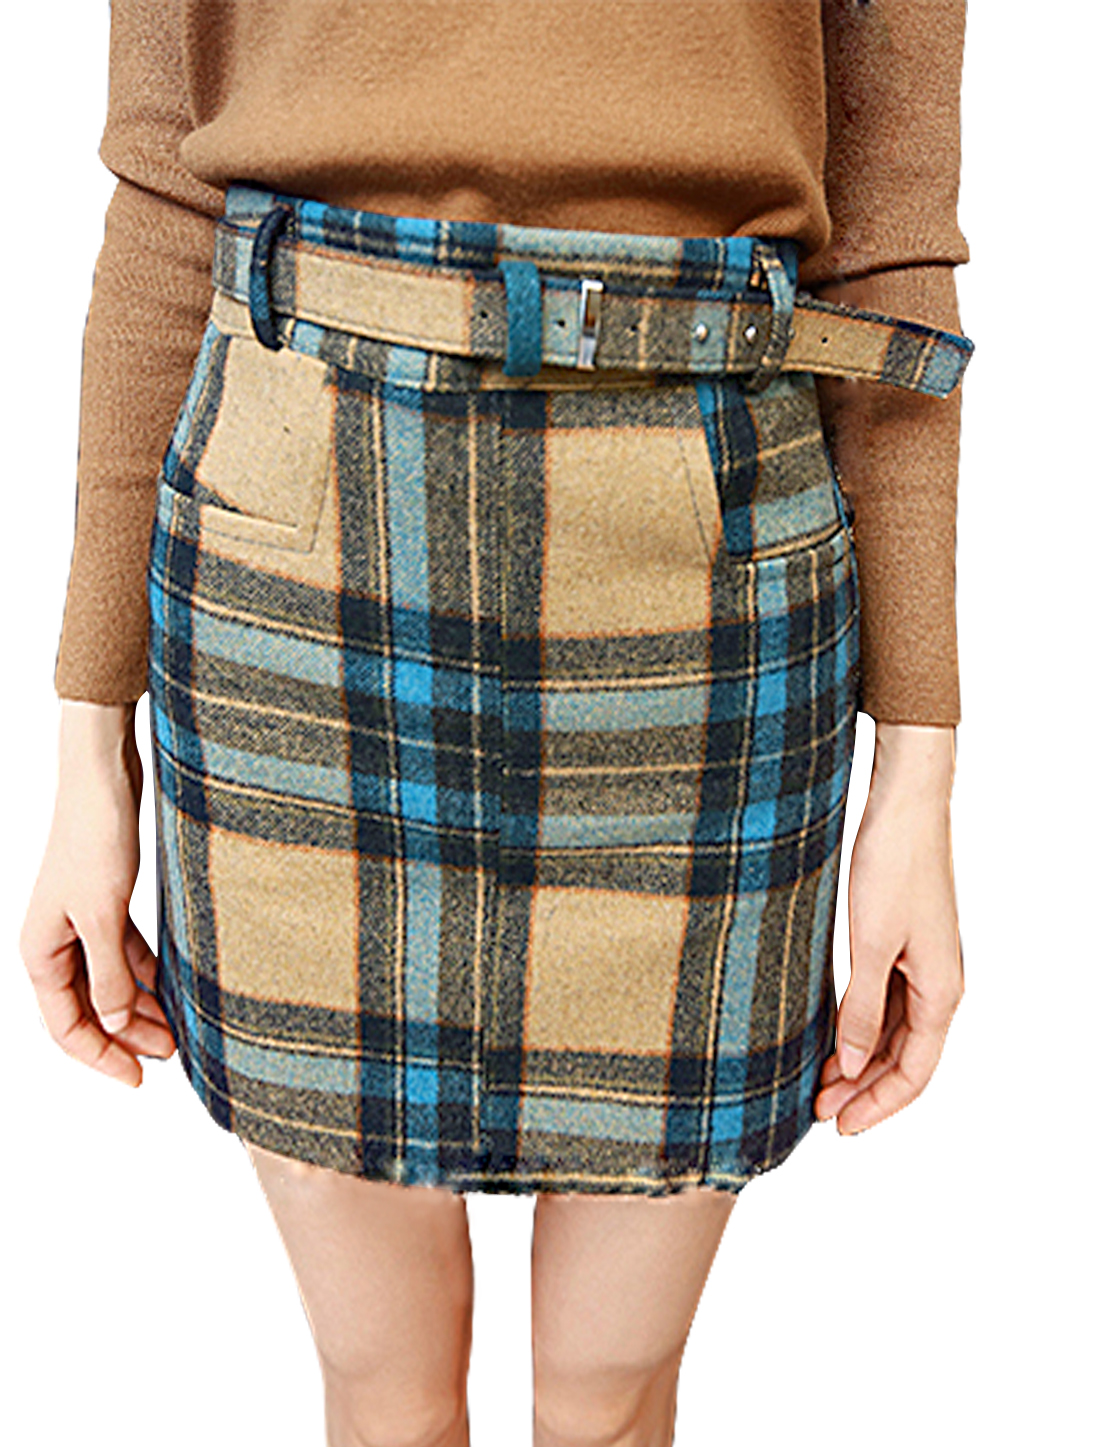 Women High Waist Plaids Unlined Worsted Pencil Skirt w Belt Blue S